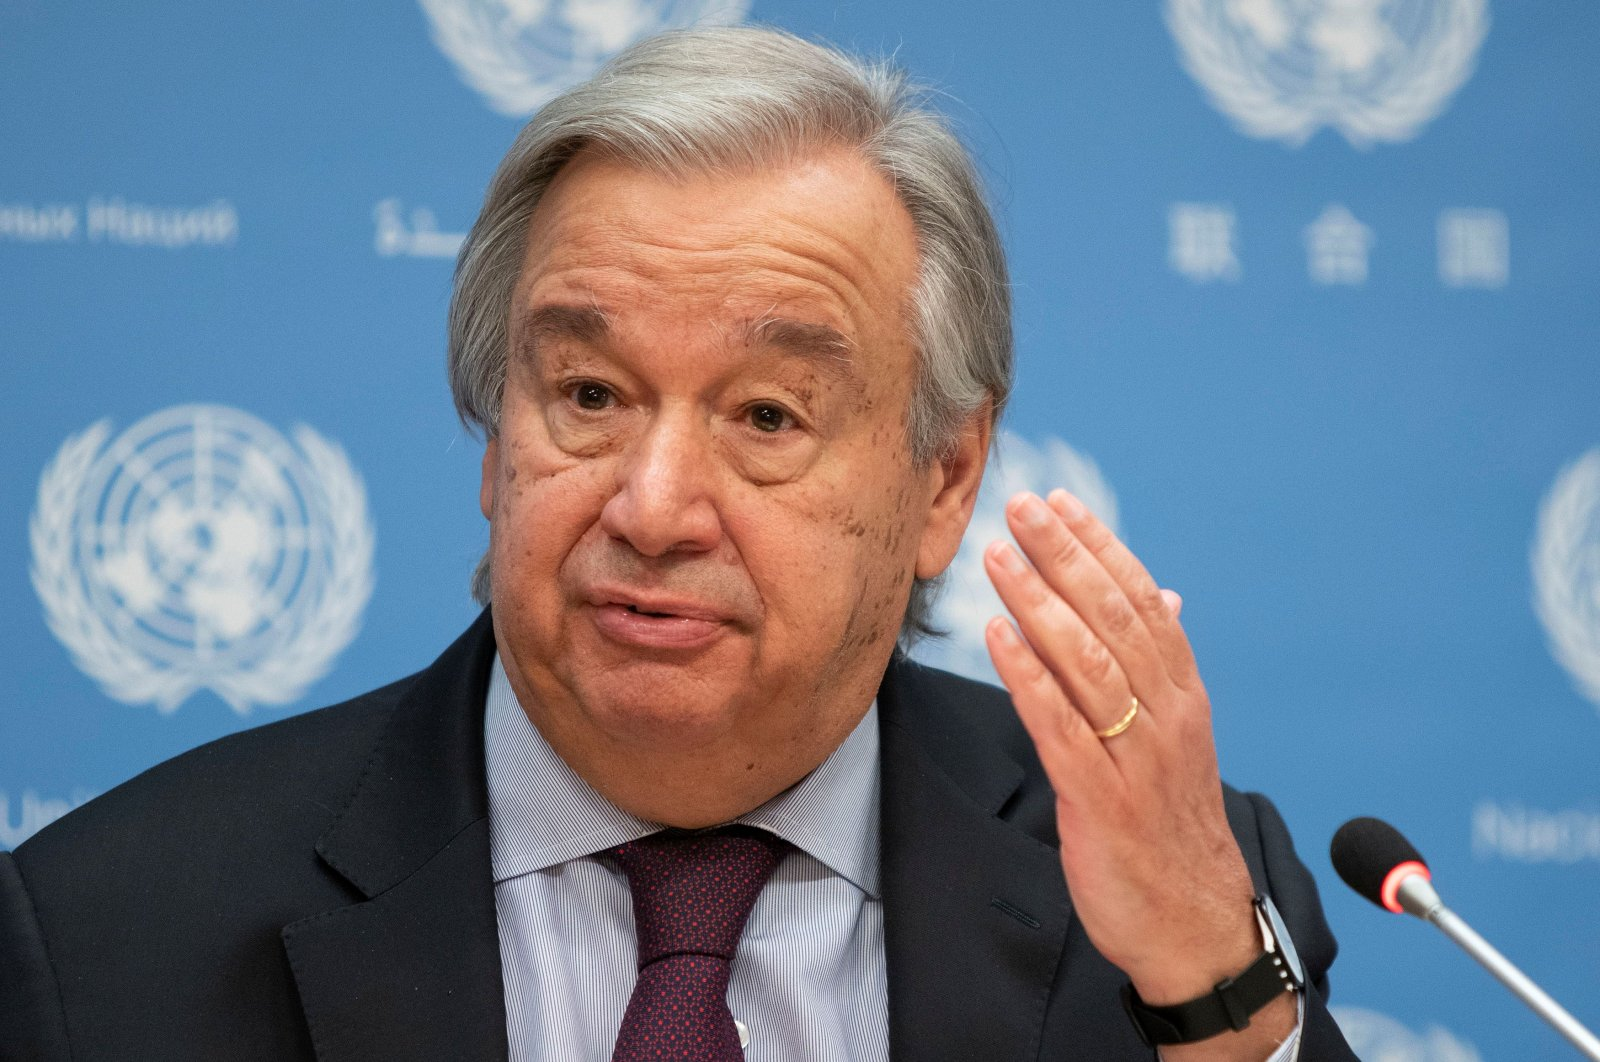 United Nations Secretary-General Antonio Guterres speaks during a news conference at U.N. headquarters in New York City, New York, U.S., Nov. 20, 2020. (Reuters Photo)